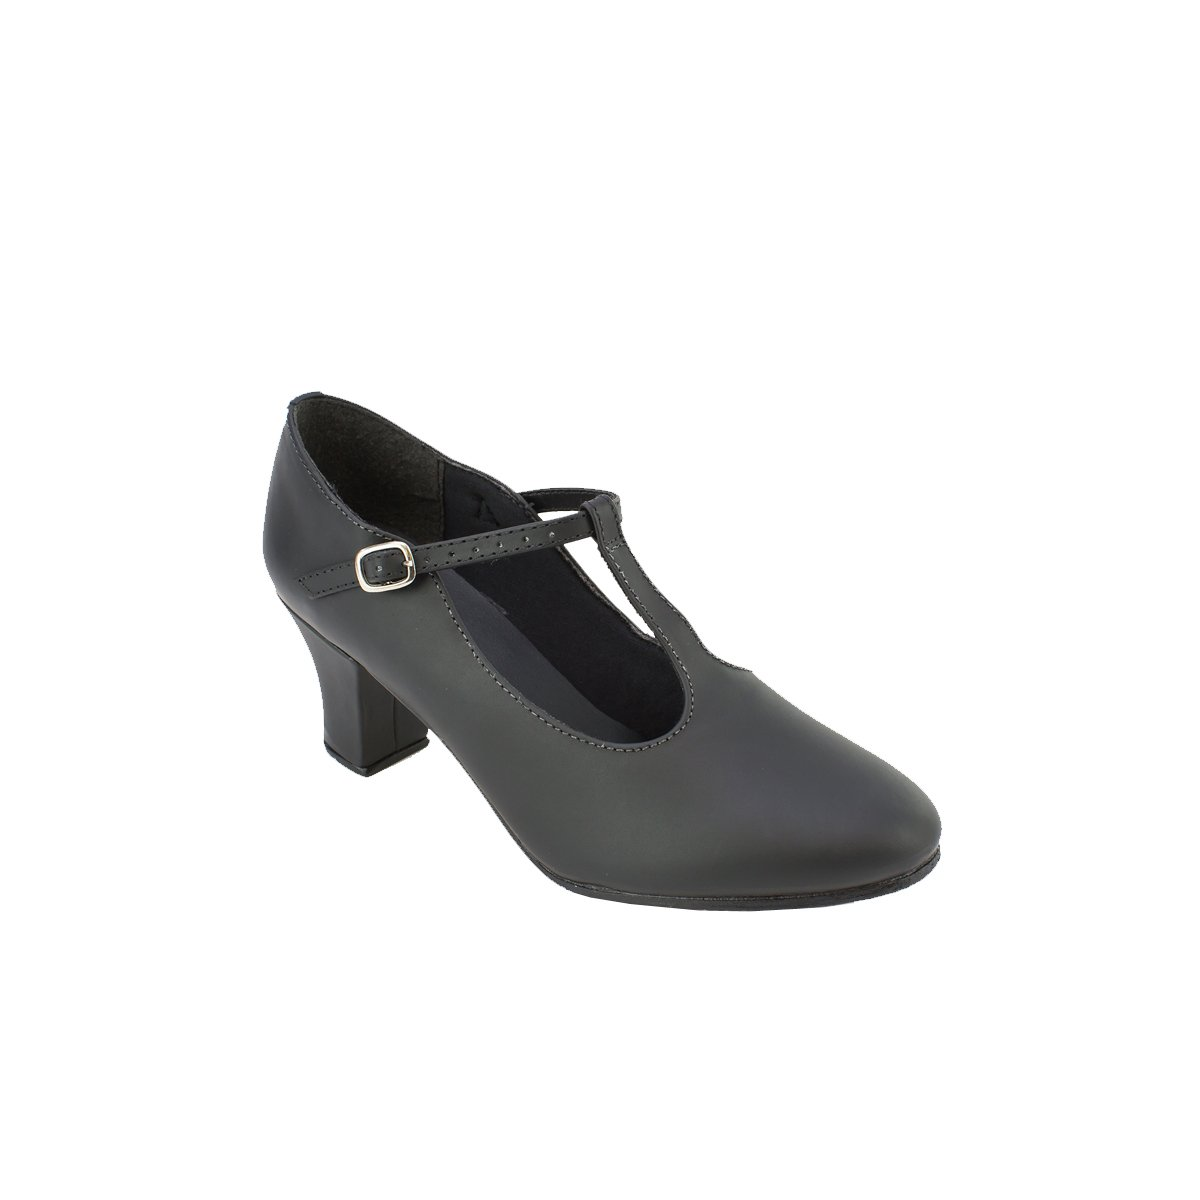 Sodanca Ch-54 Christa 2 Heel All Leather T - Strap Character Shoe